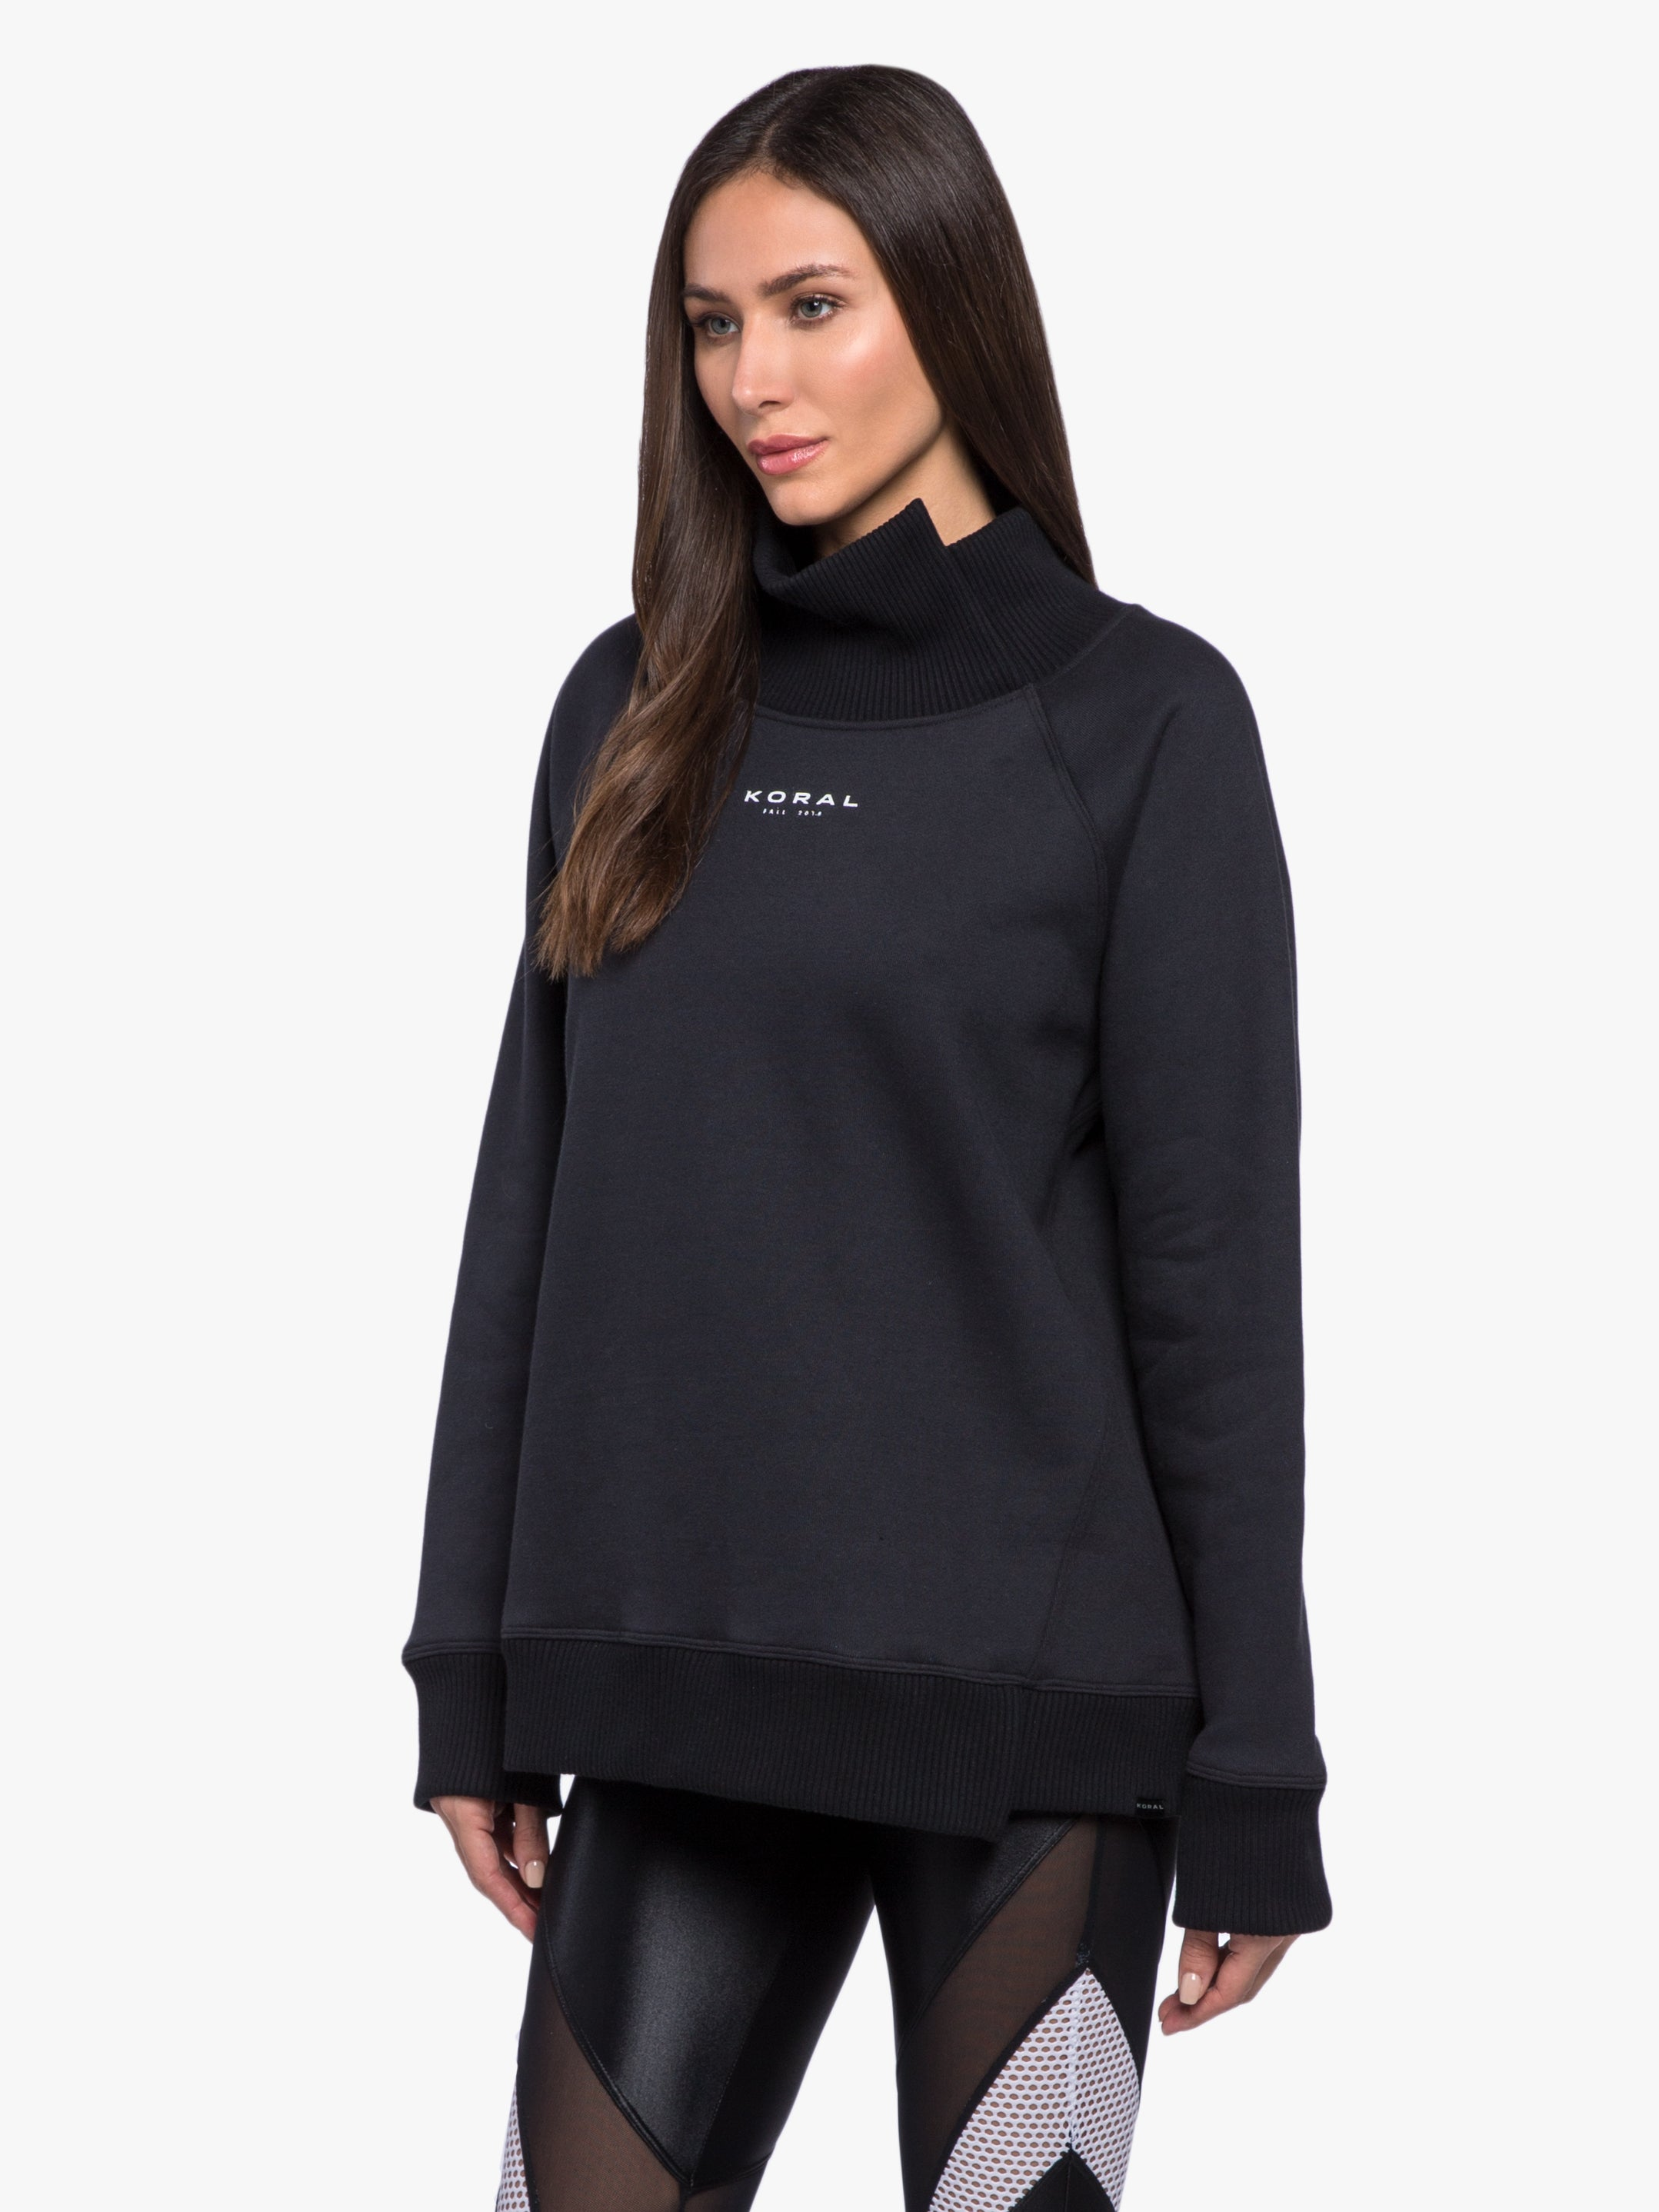 Lucid Haze Sweatshirt - Black